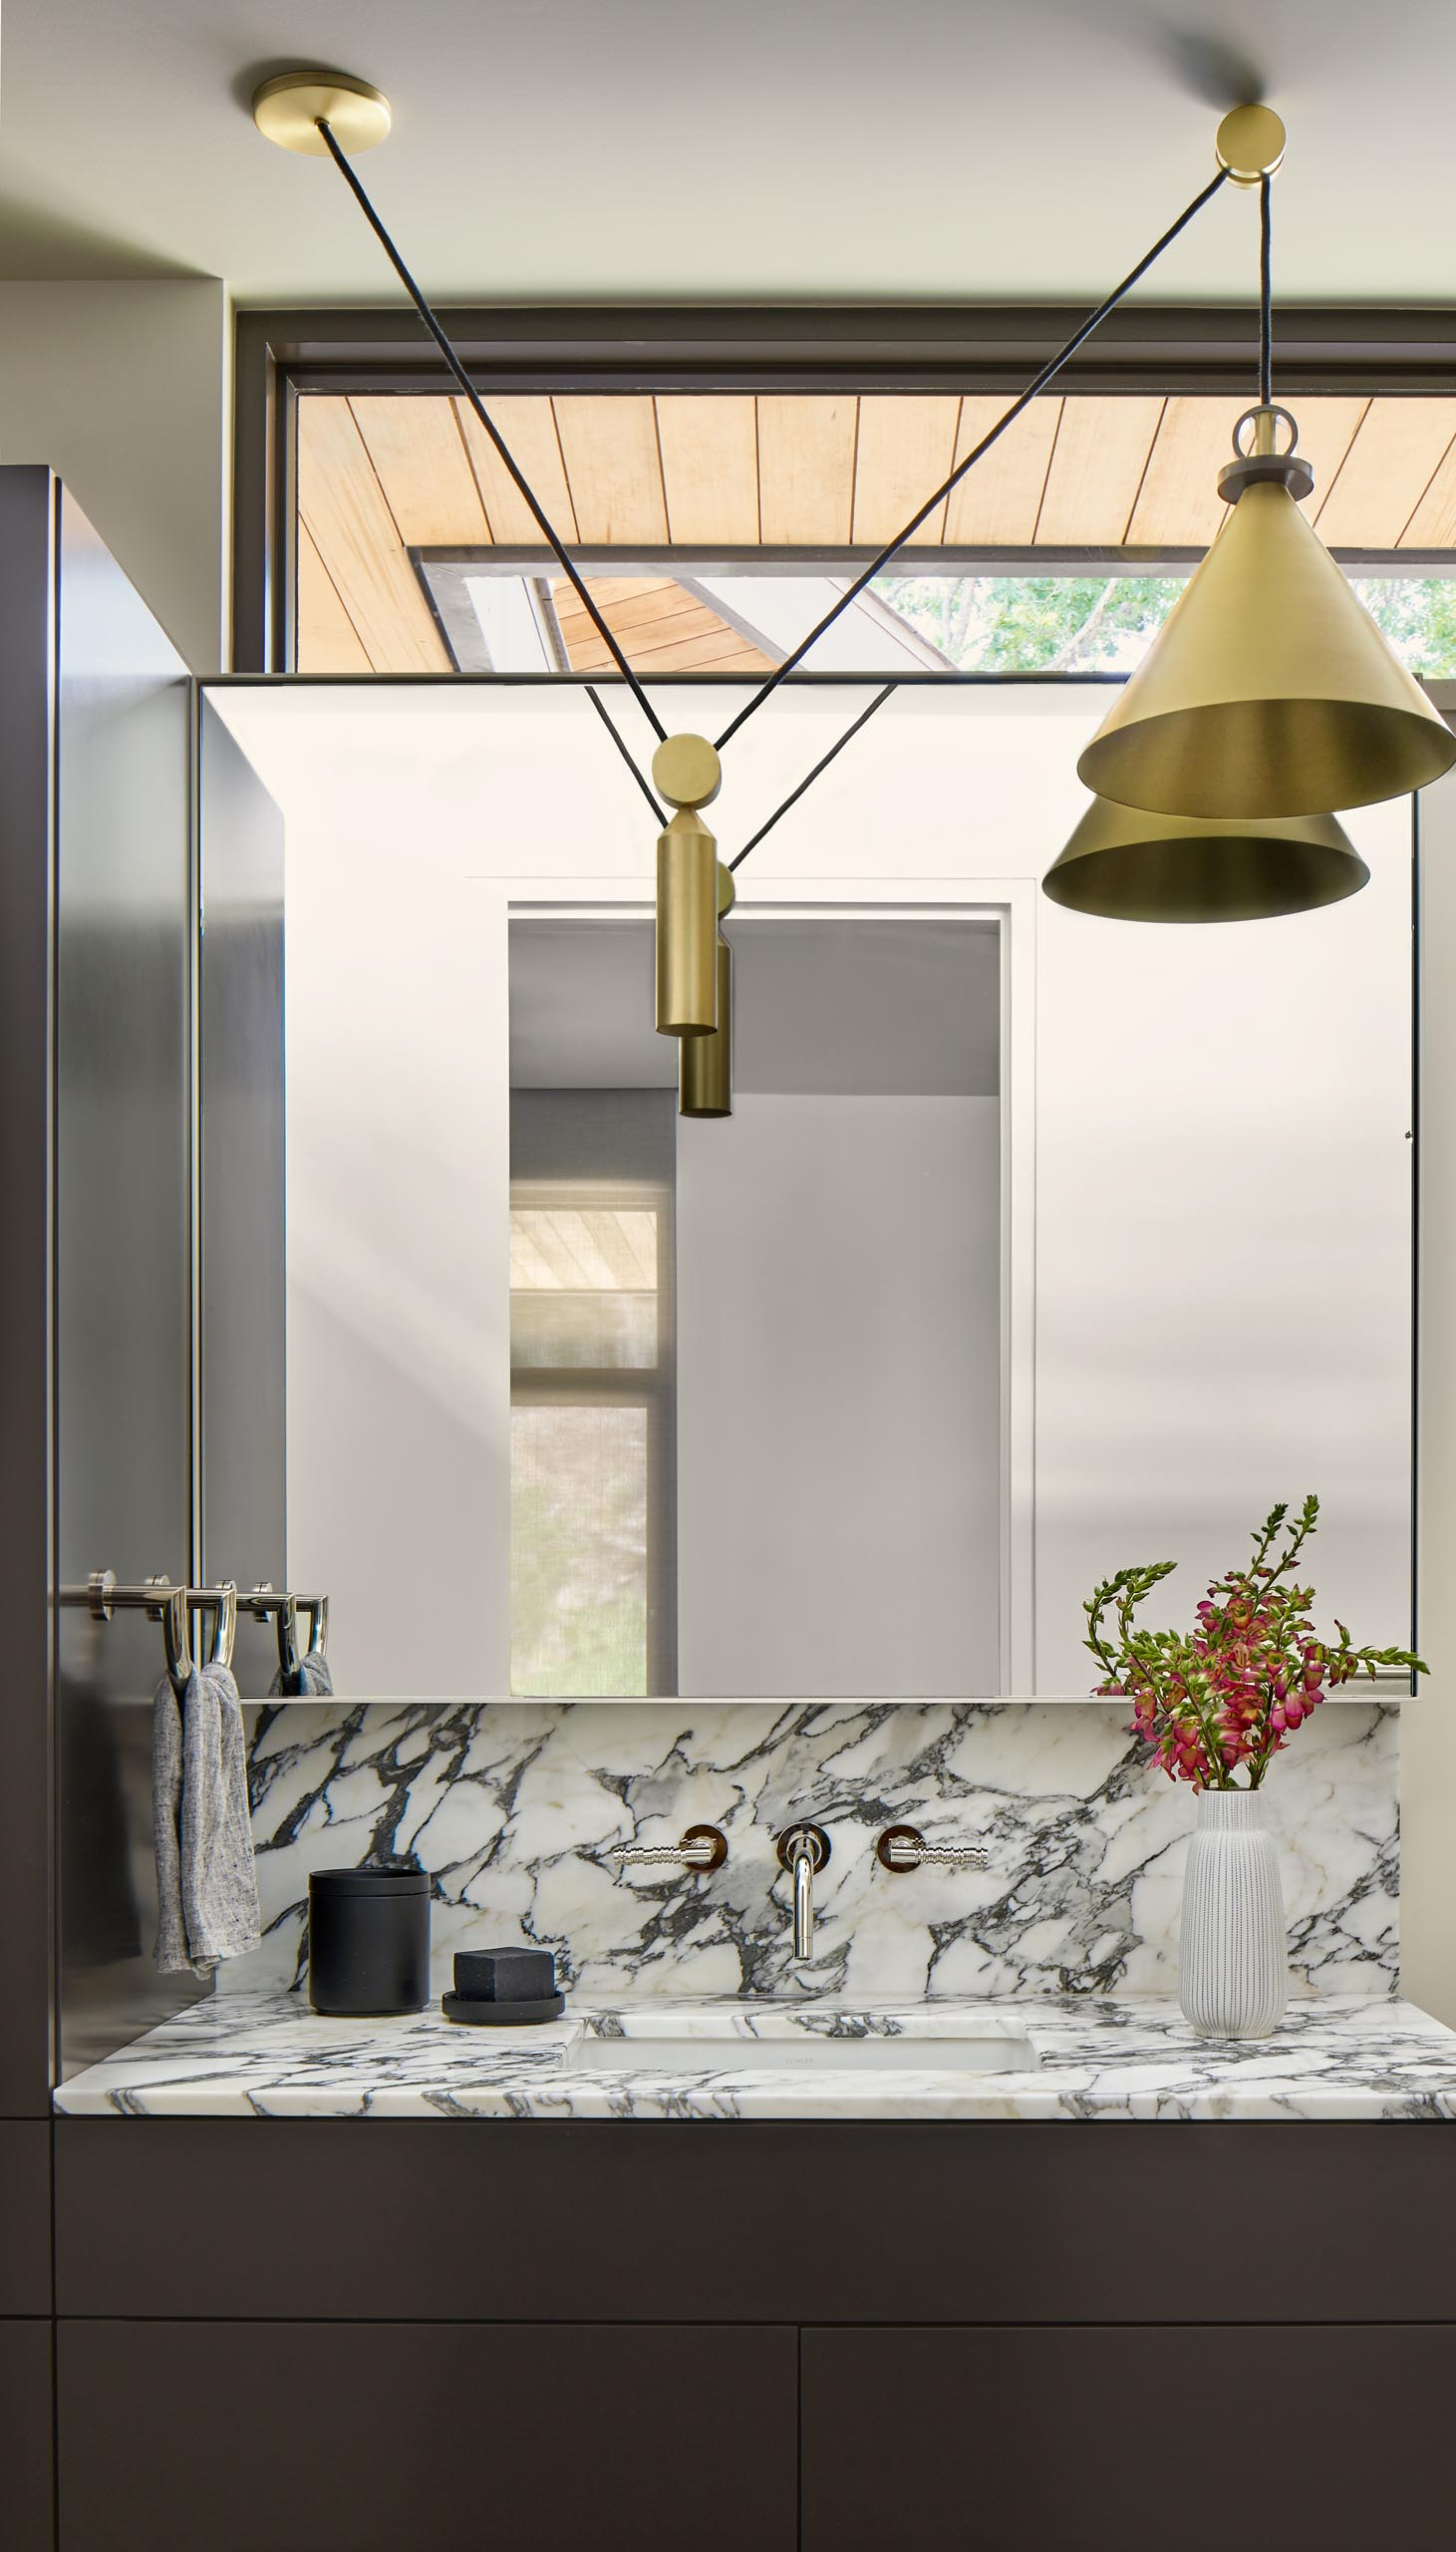 A guest bathroom features a dark vanity with a marbled top and metallic lighting.